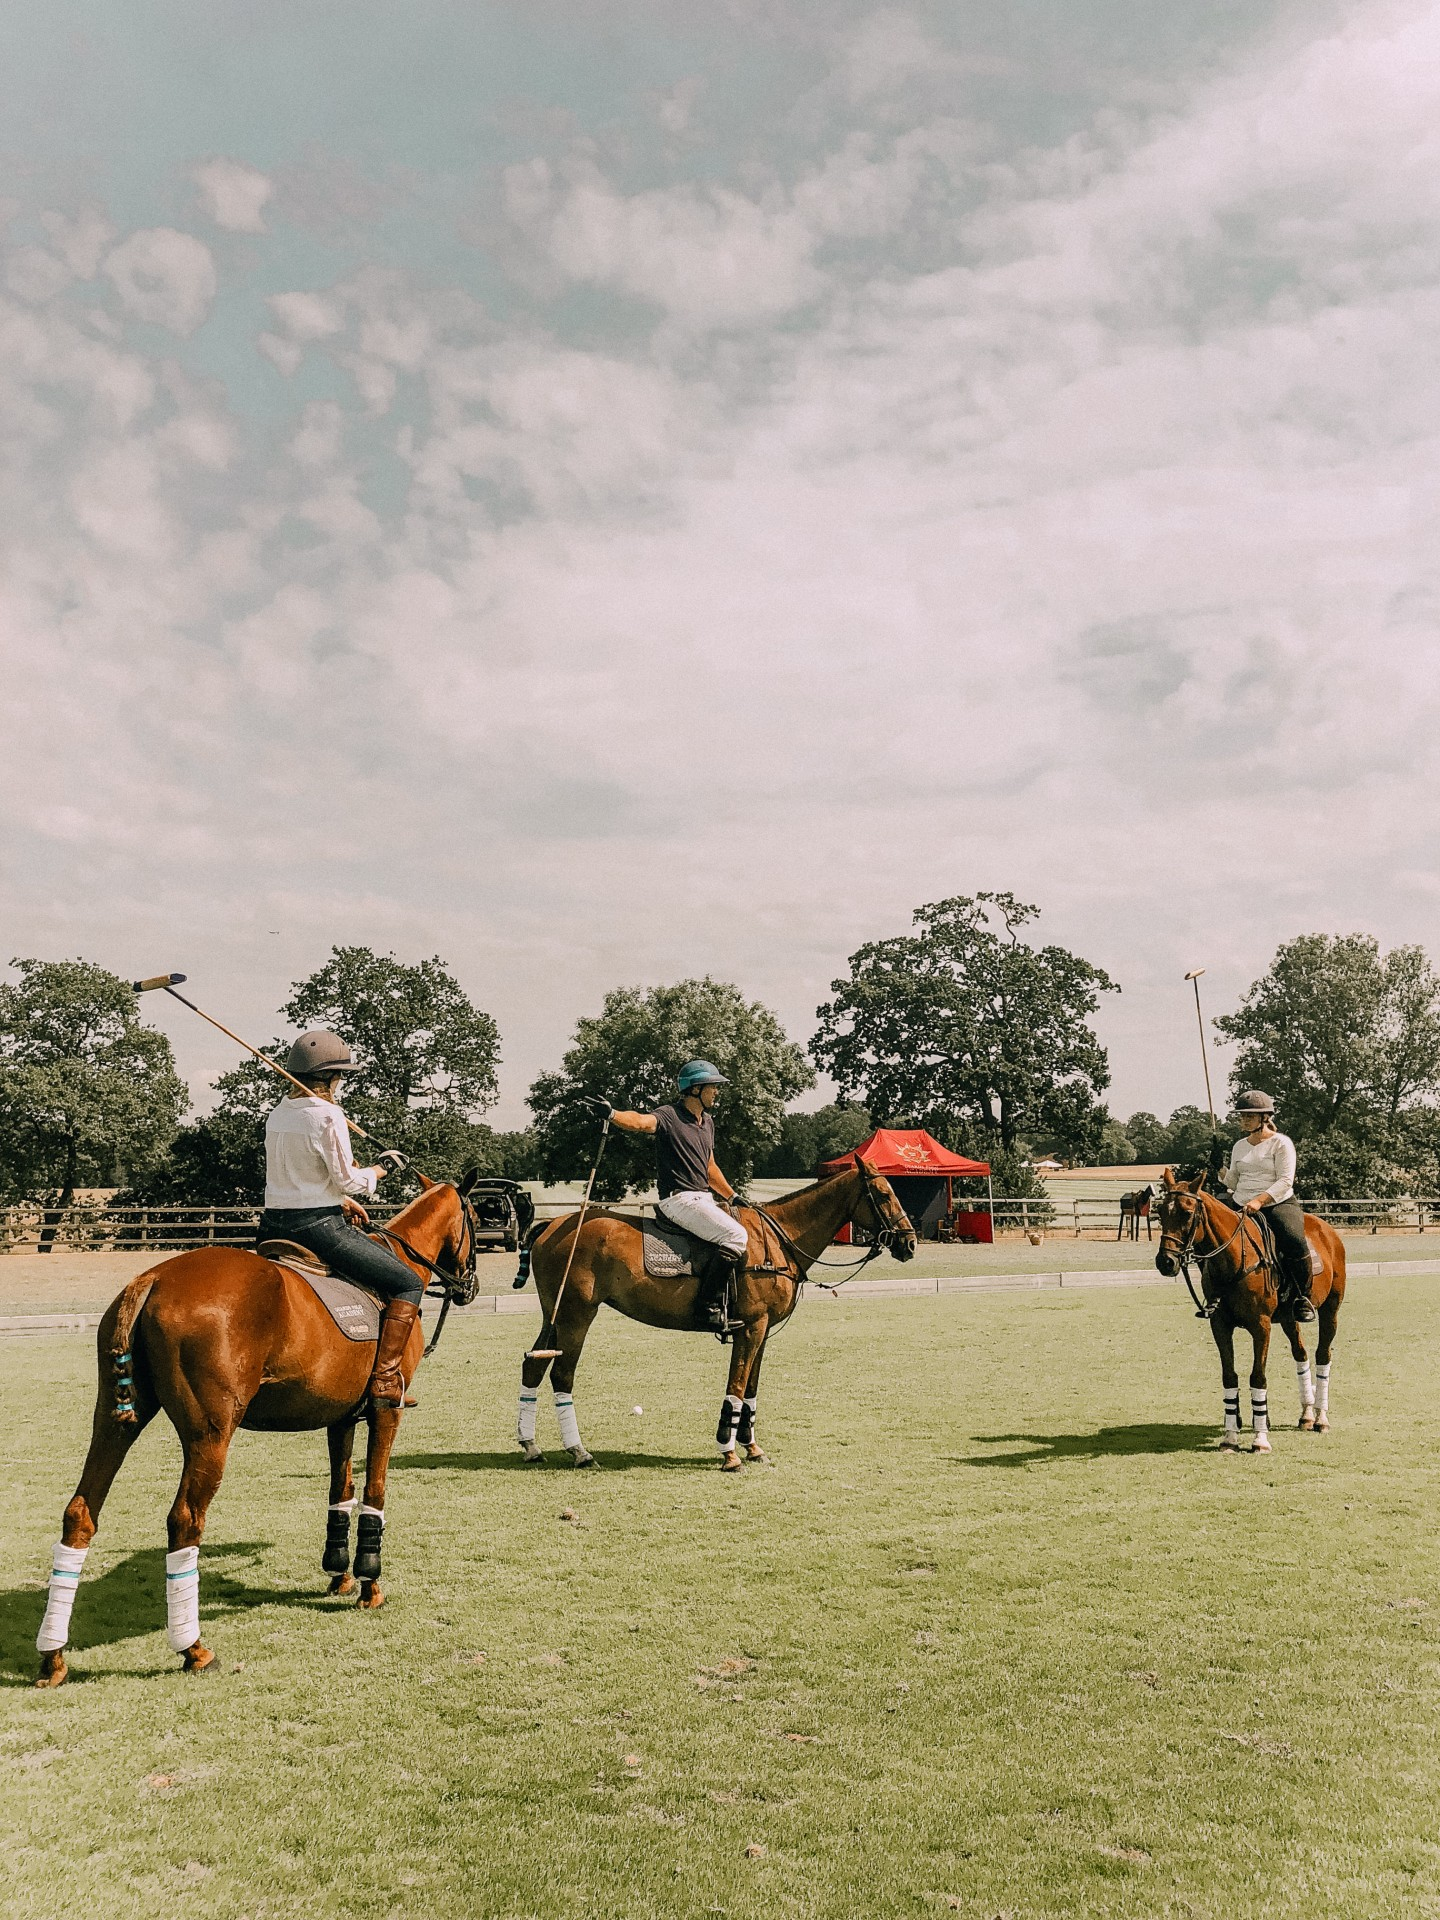 Lifestyle blogger Mollie Moore has the ultimate polo day at Coworth Park featured by popular London life and style blogger, Mollie Moore